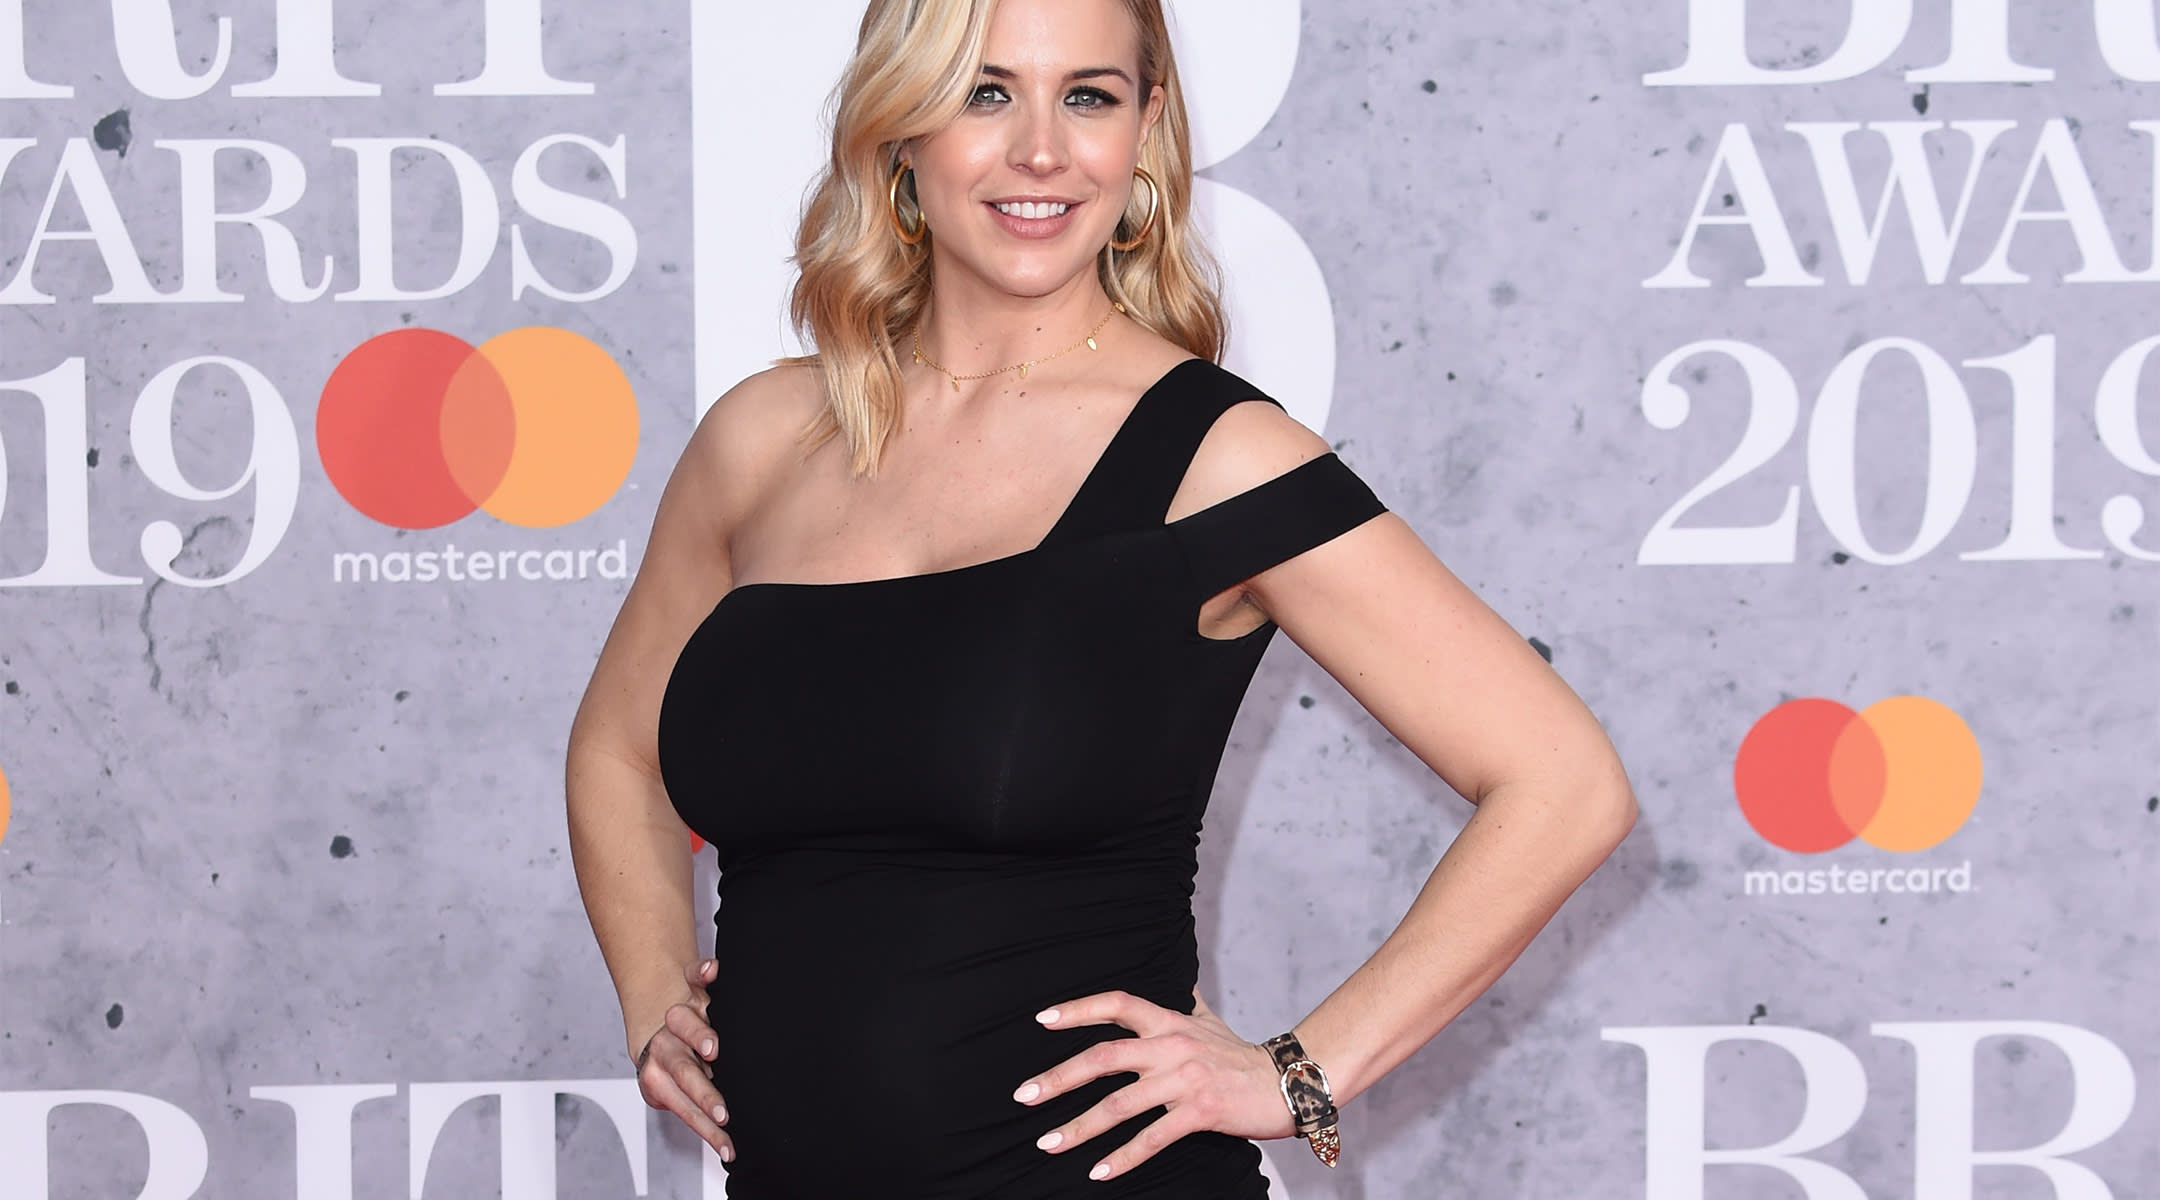 Actress Gemma Atkinson Defends Herself Against C-Section Shaming